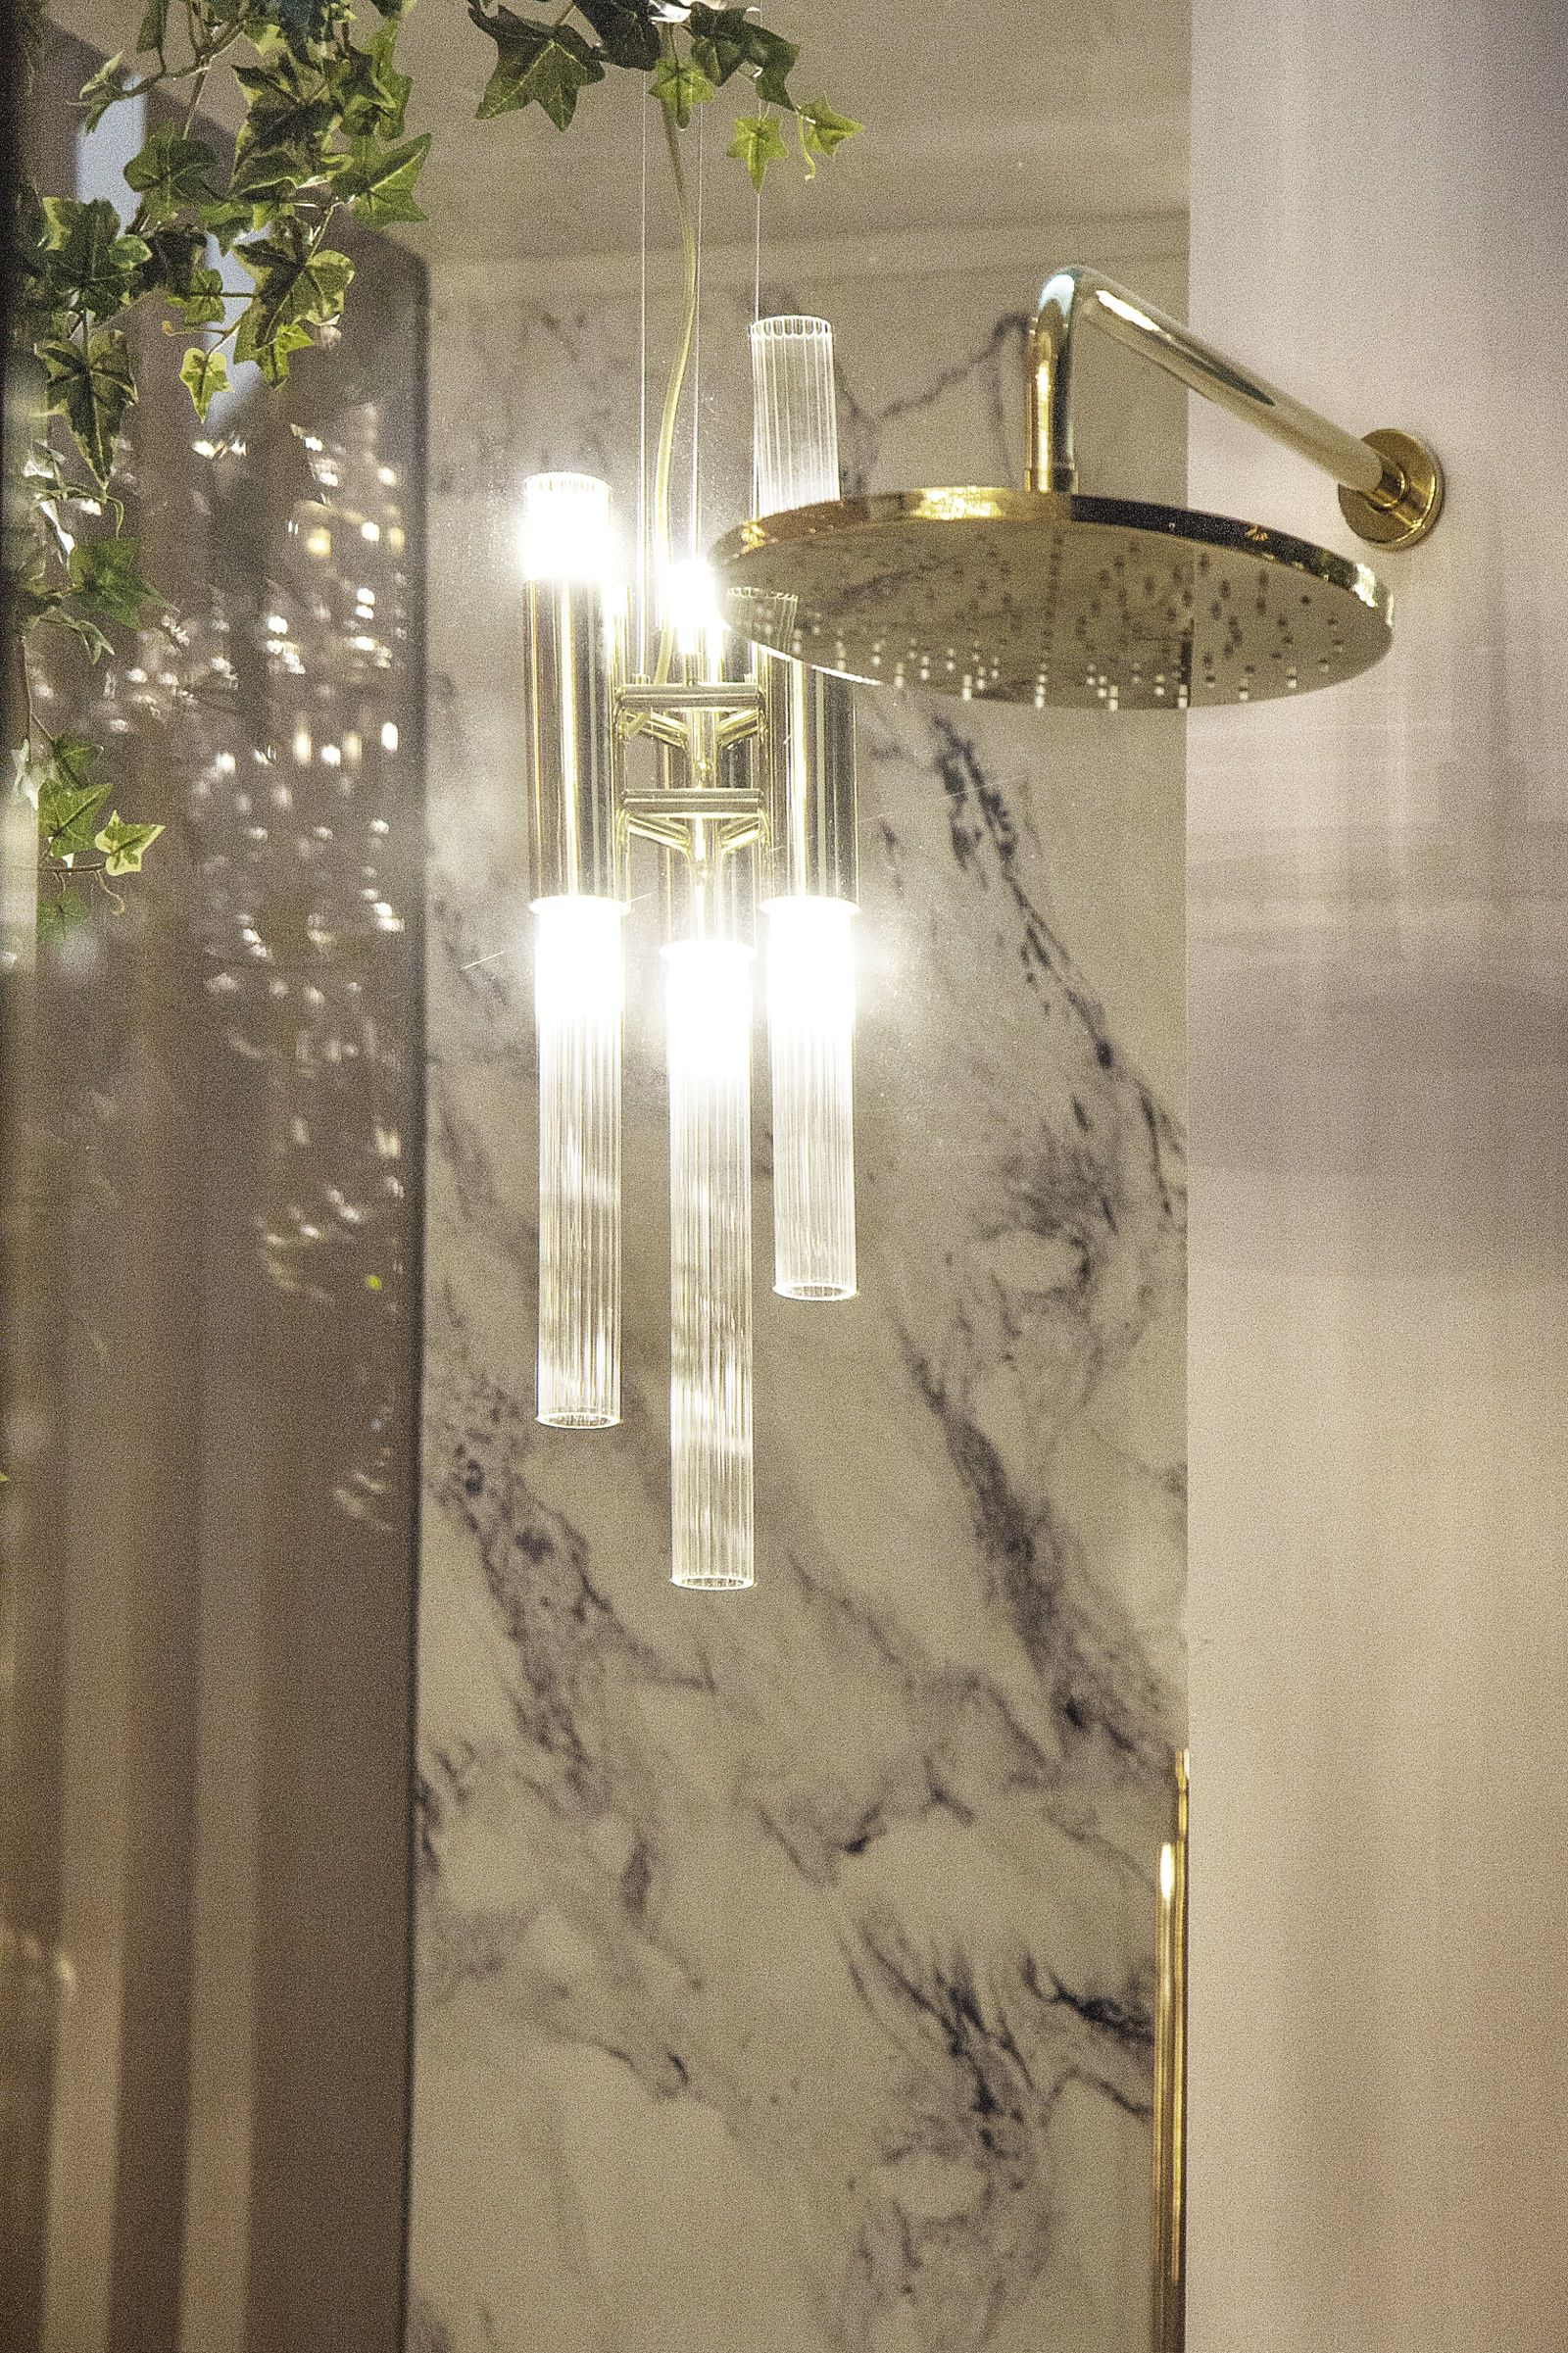 Isaloni decor trade show in milan bb contract contract